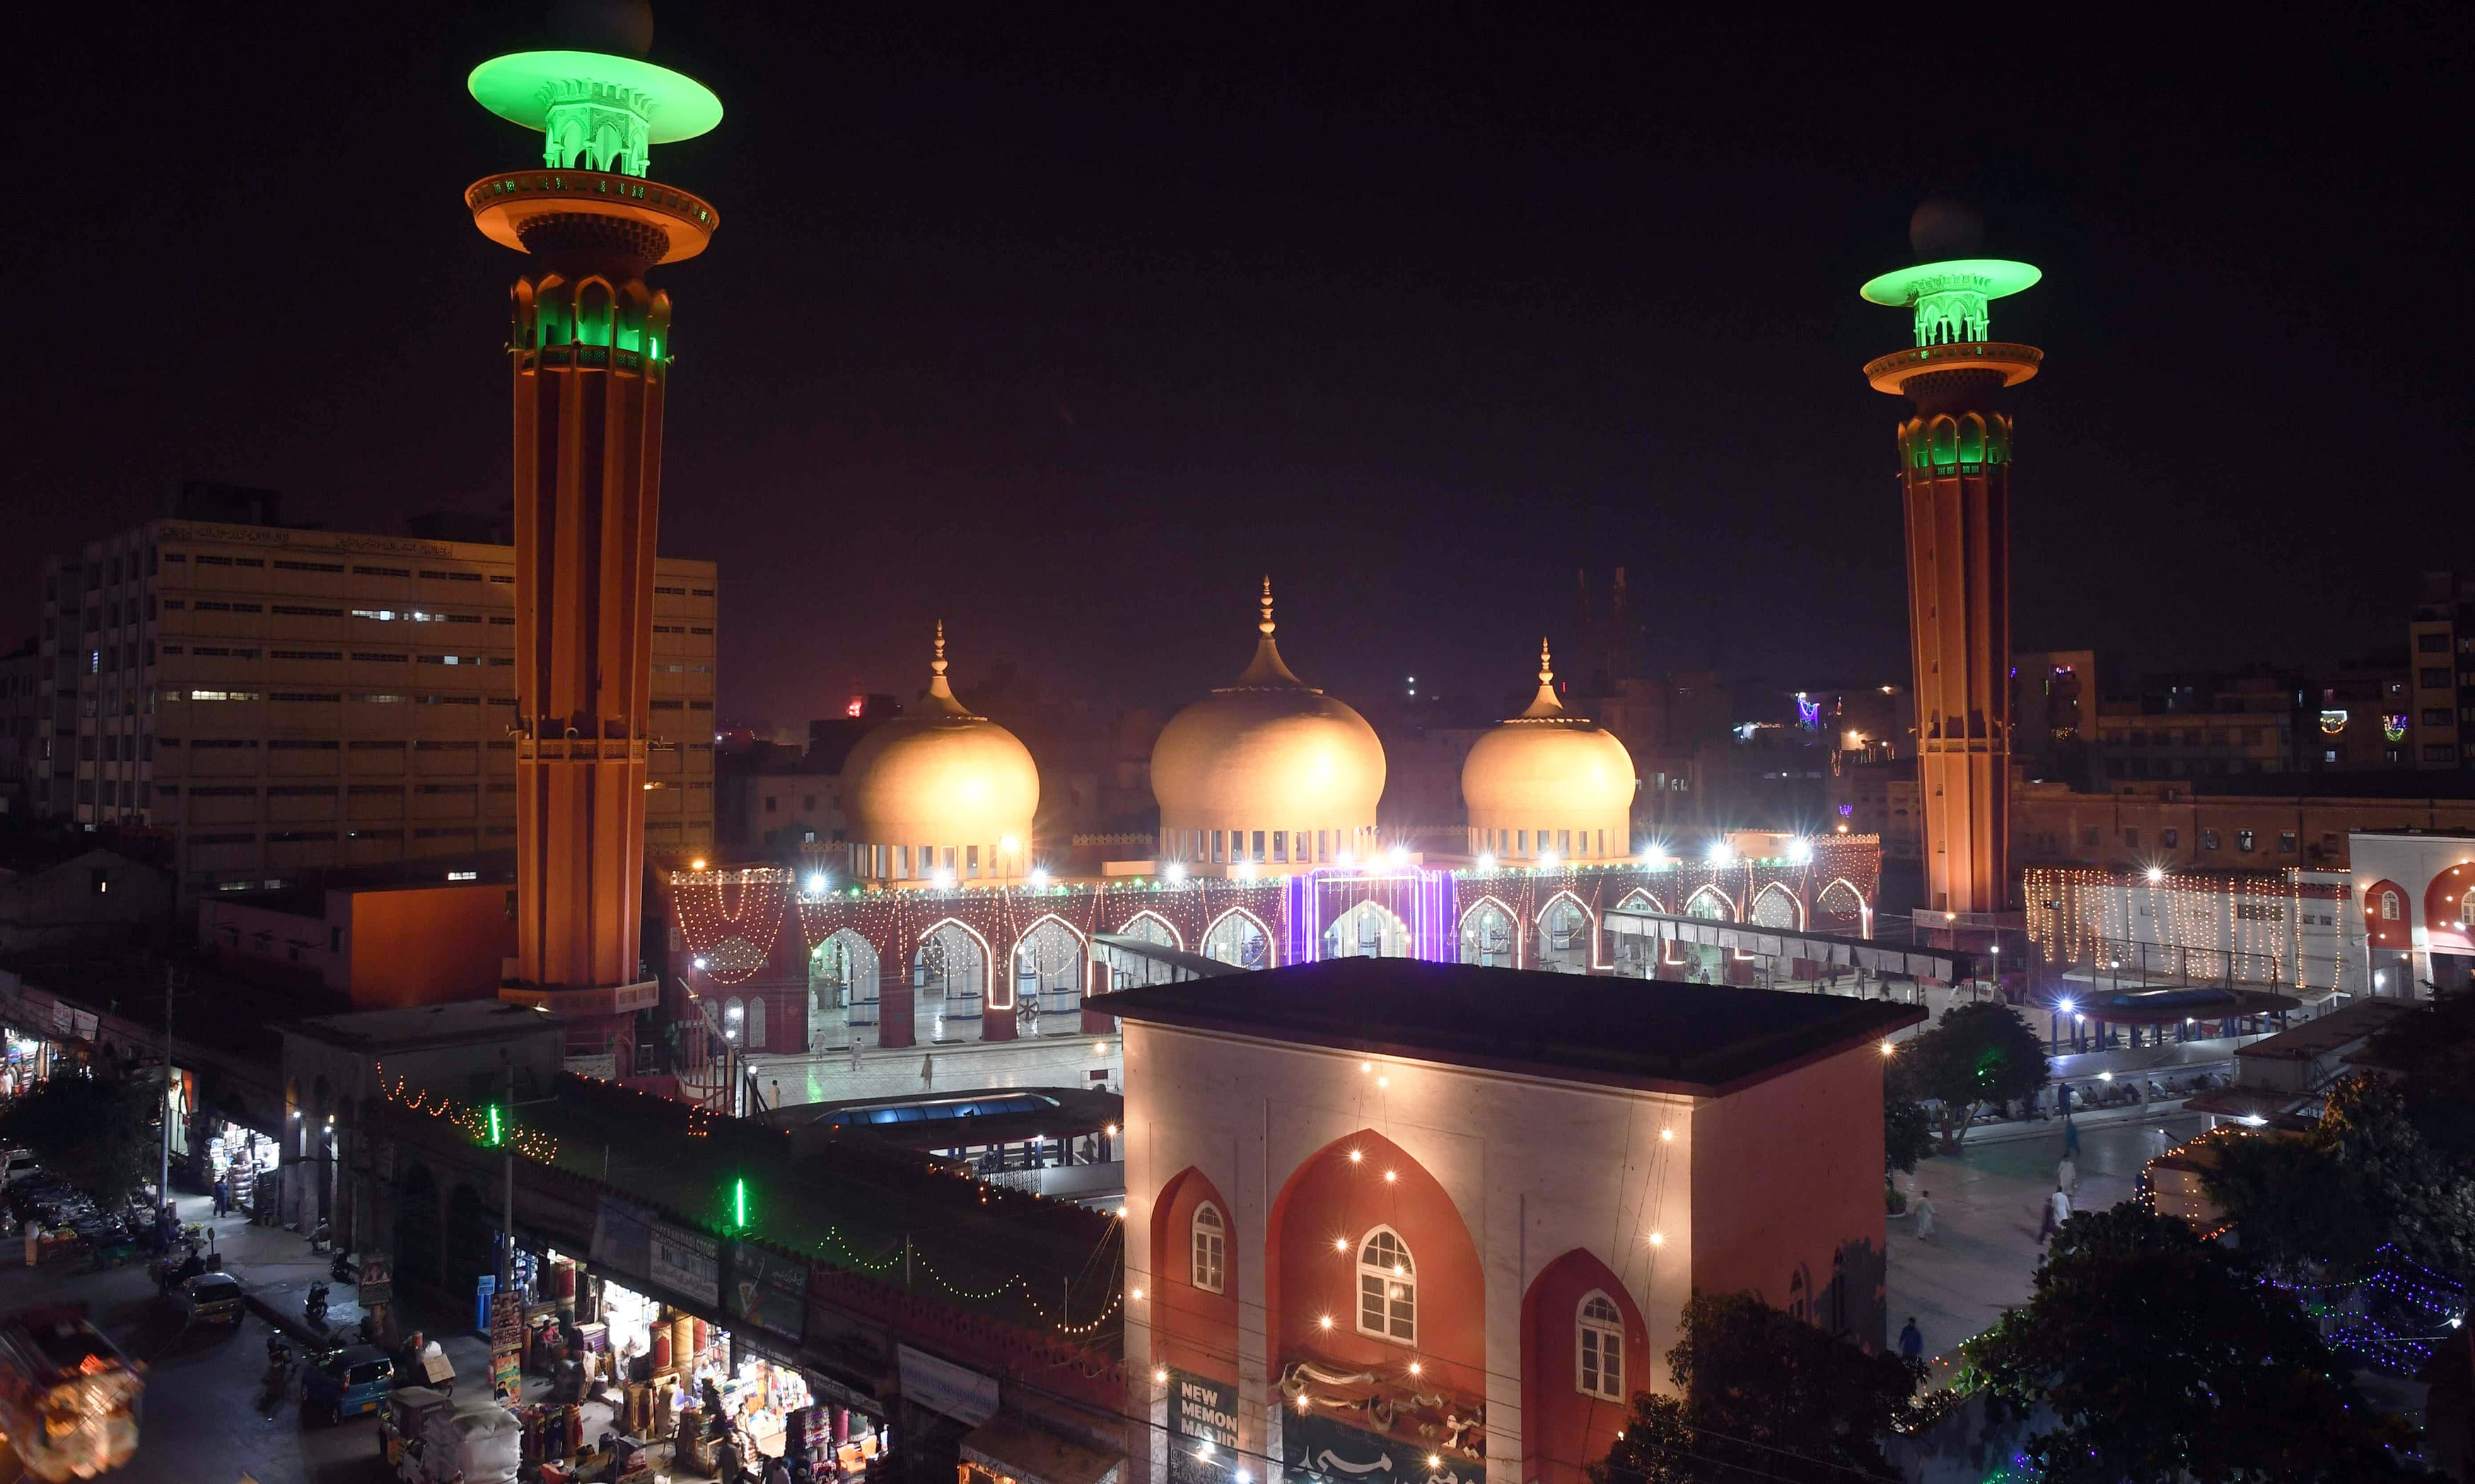 A general view shows an illuminated mosque as part of festivities ahead of Eid-i-Miladun Nabi in Karachi. —AFP